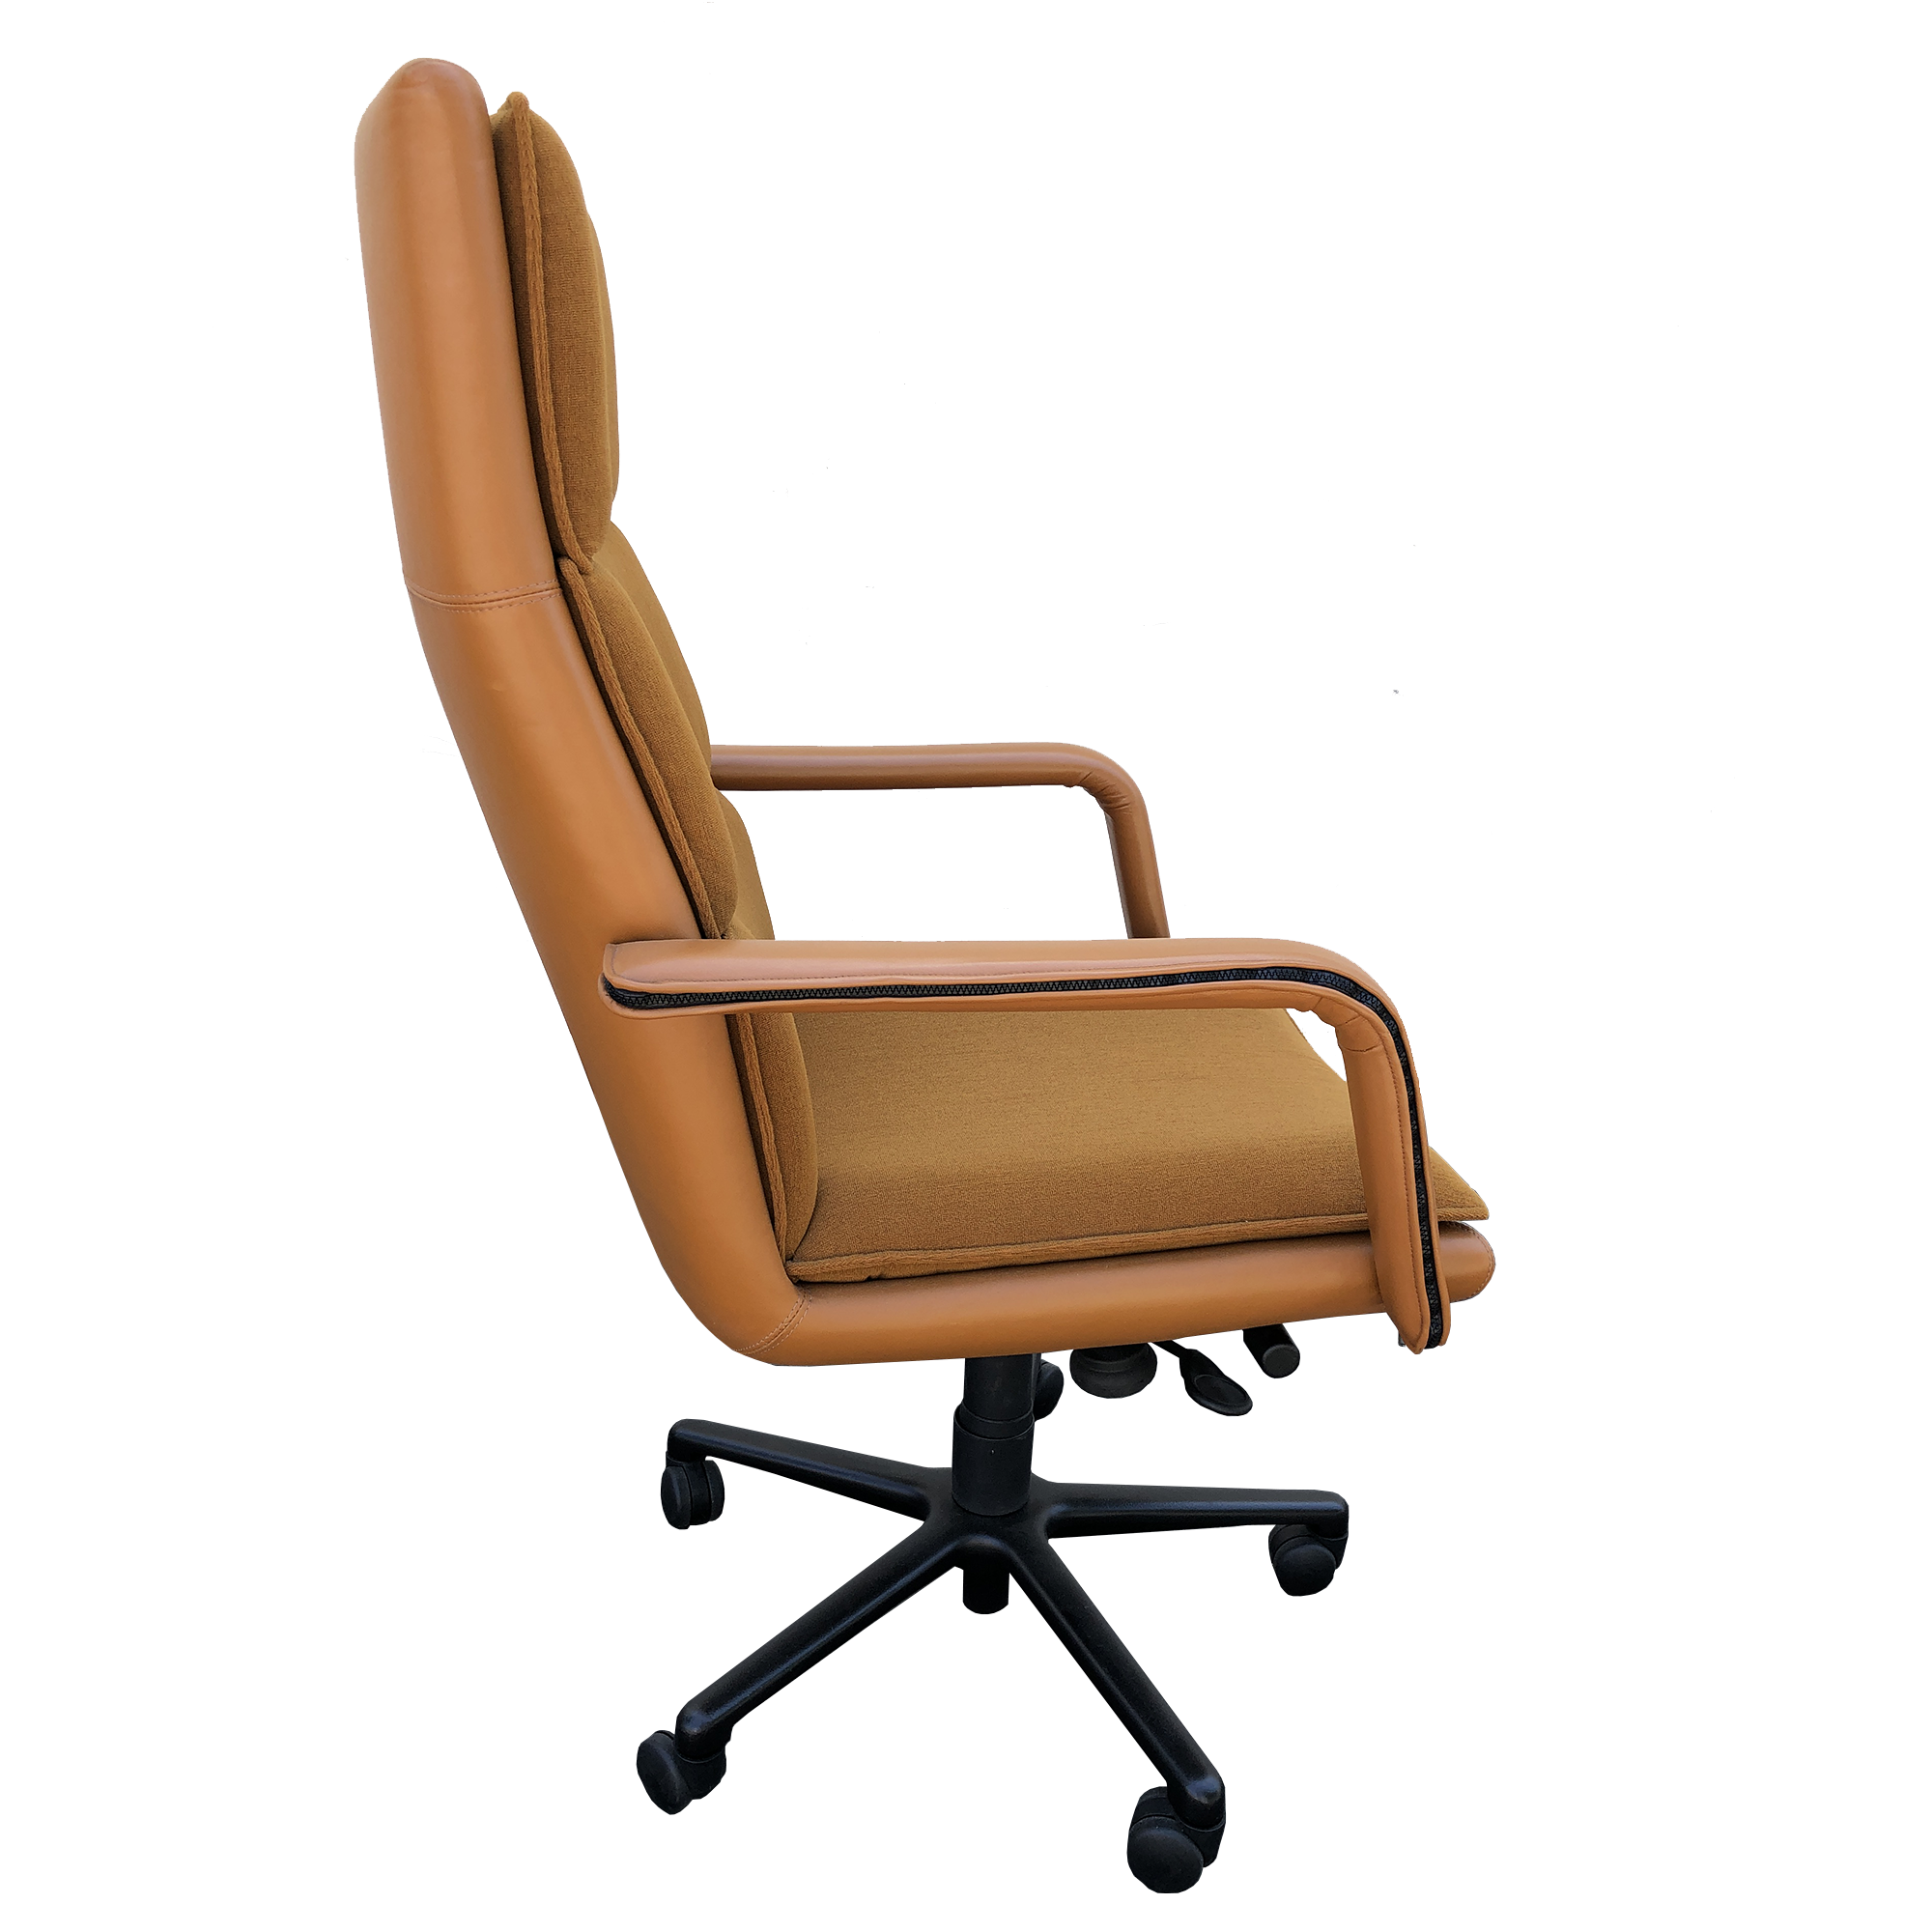 Surprising Keilhauer Conference Chairs In Leather And Fabric Caraccident5 Cool Chair Designs And Ideas Caraccident5Info